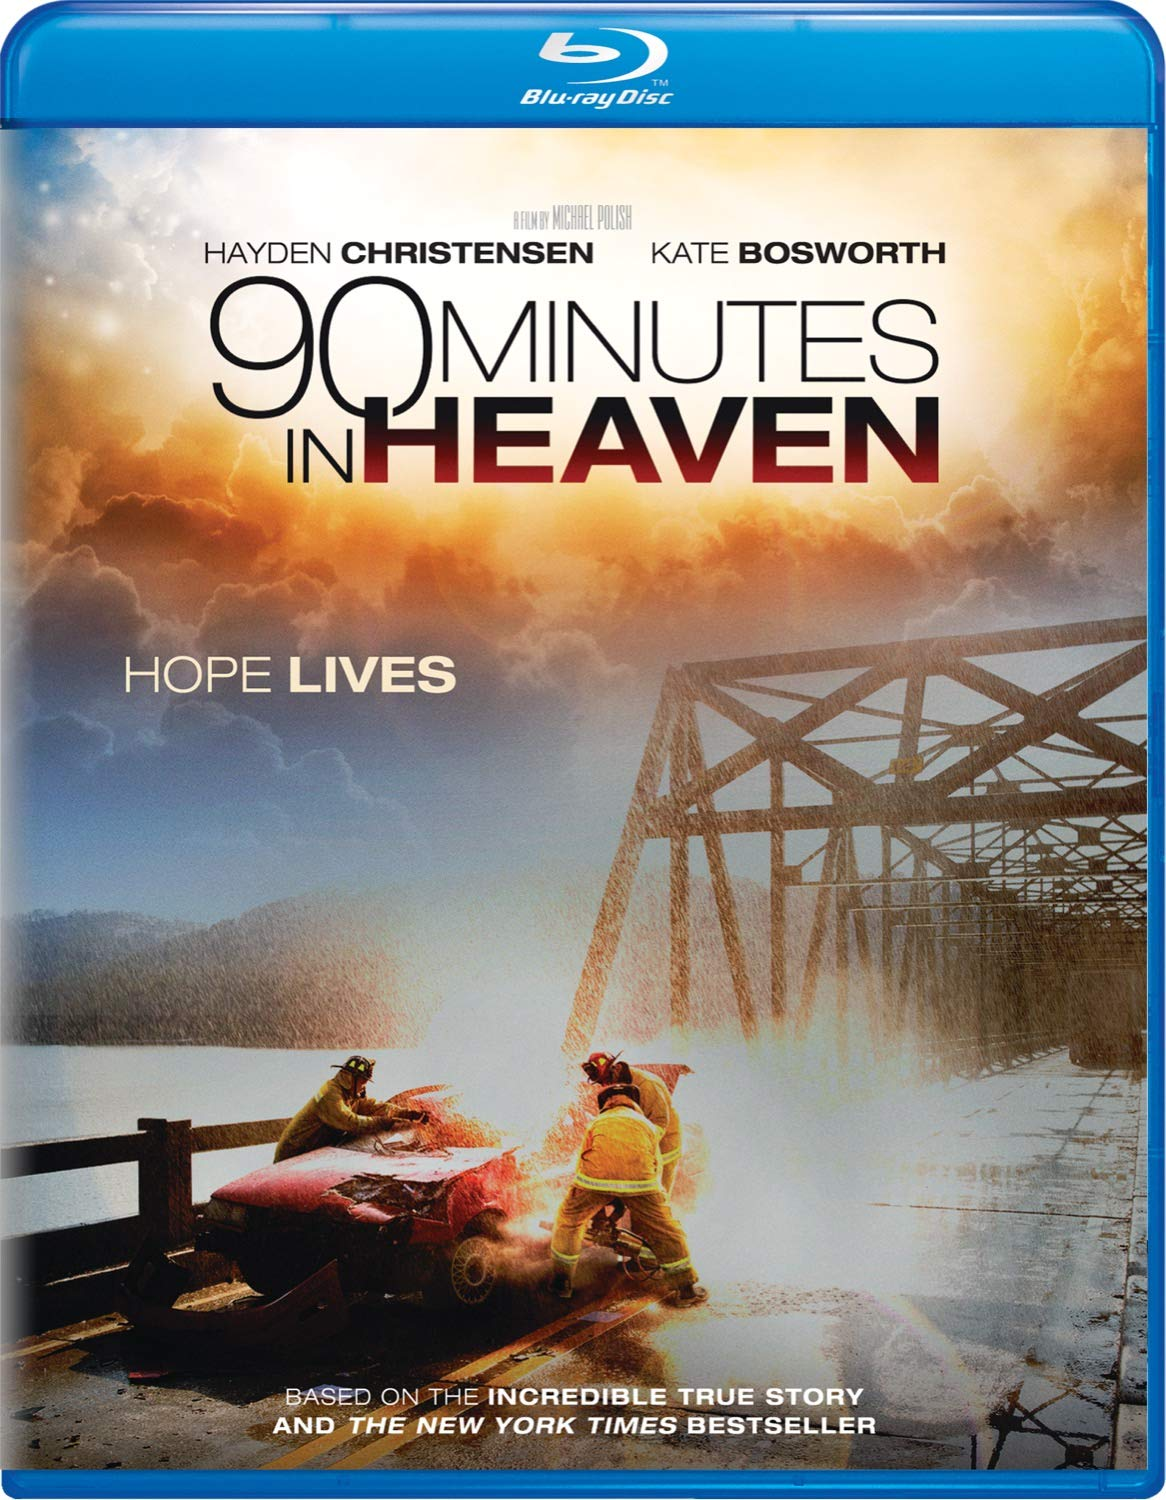 90 Minutes in Heaven [Blu-ray]